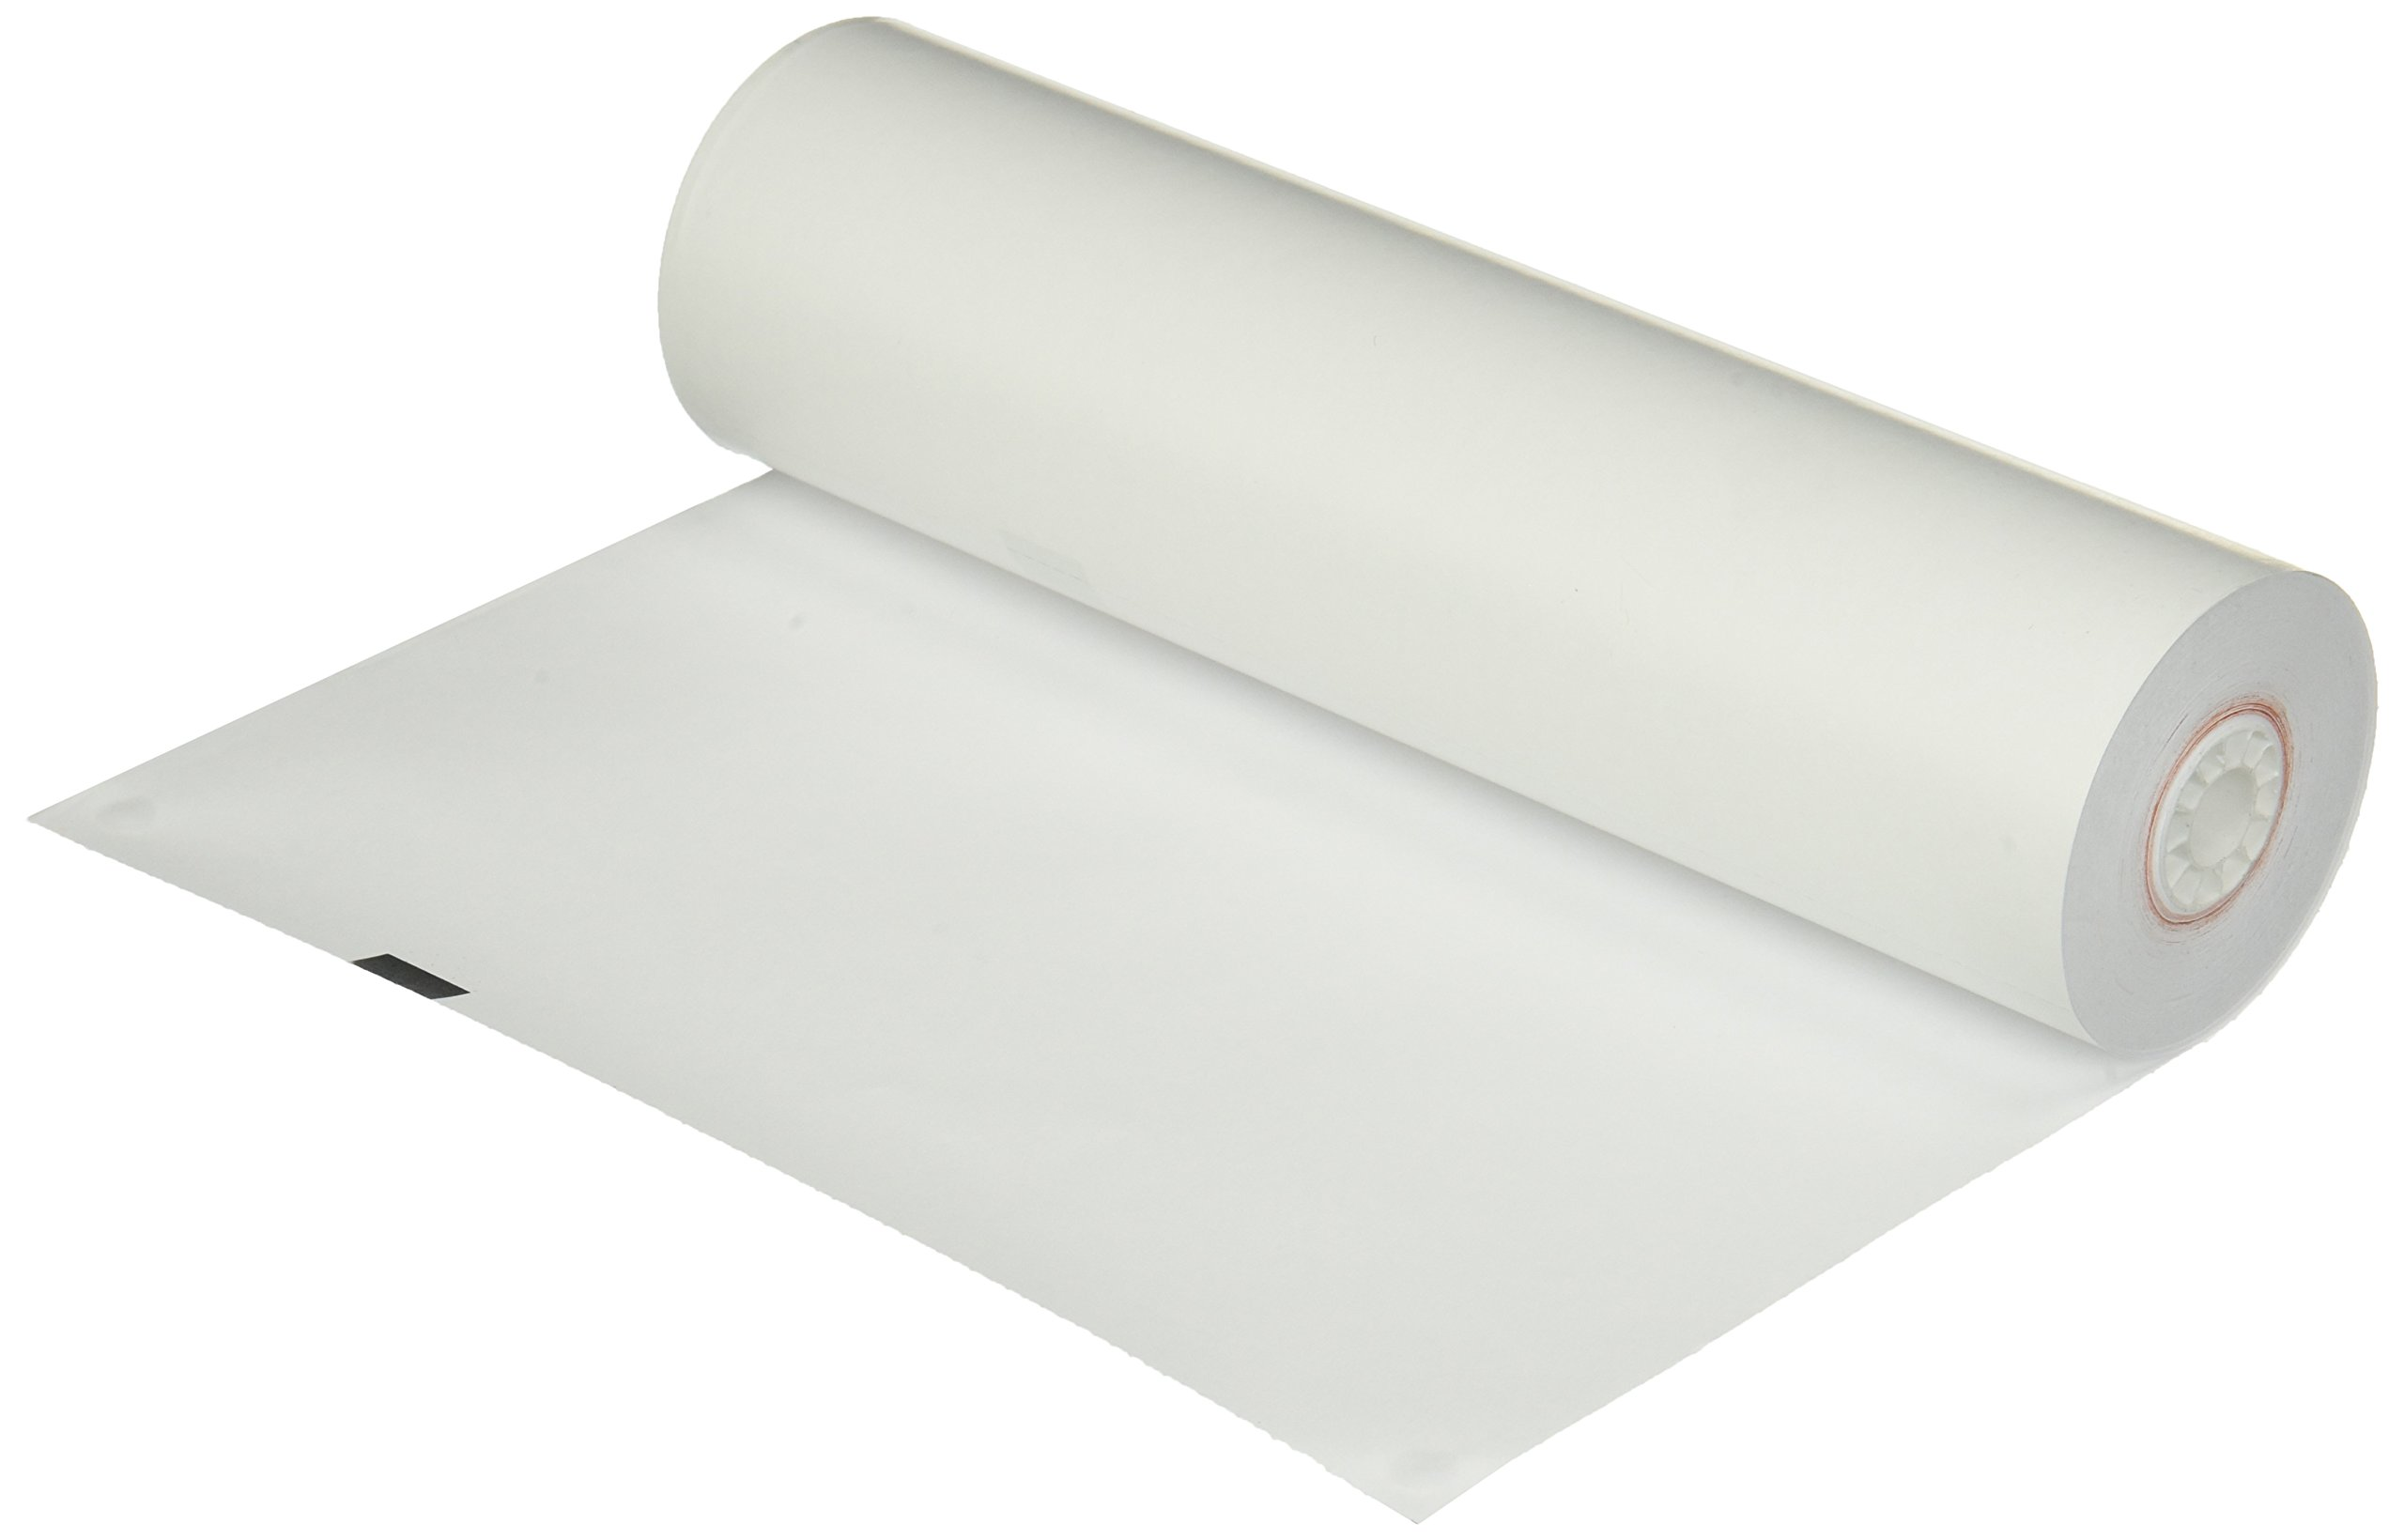 Partek Solutions Brother Mobile LB3788 Alternative, Premium Perforated Roll Thermal Paper, 20 Year Archive Ability, 6 Rolls